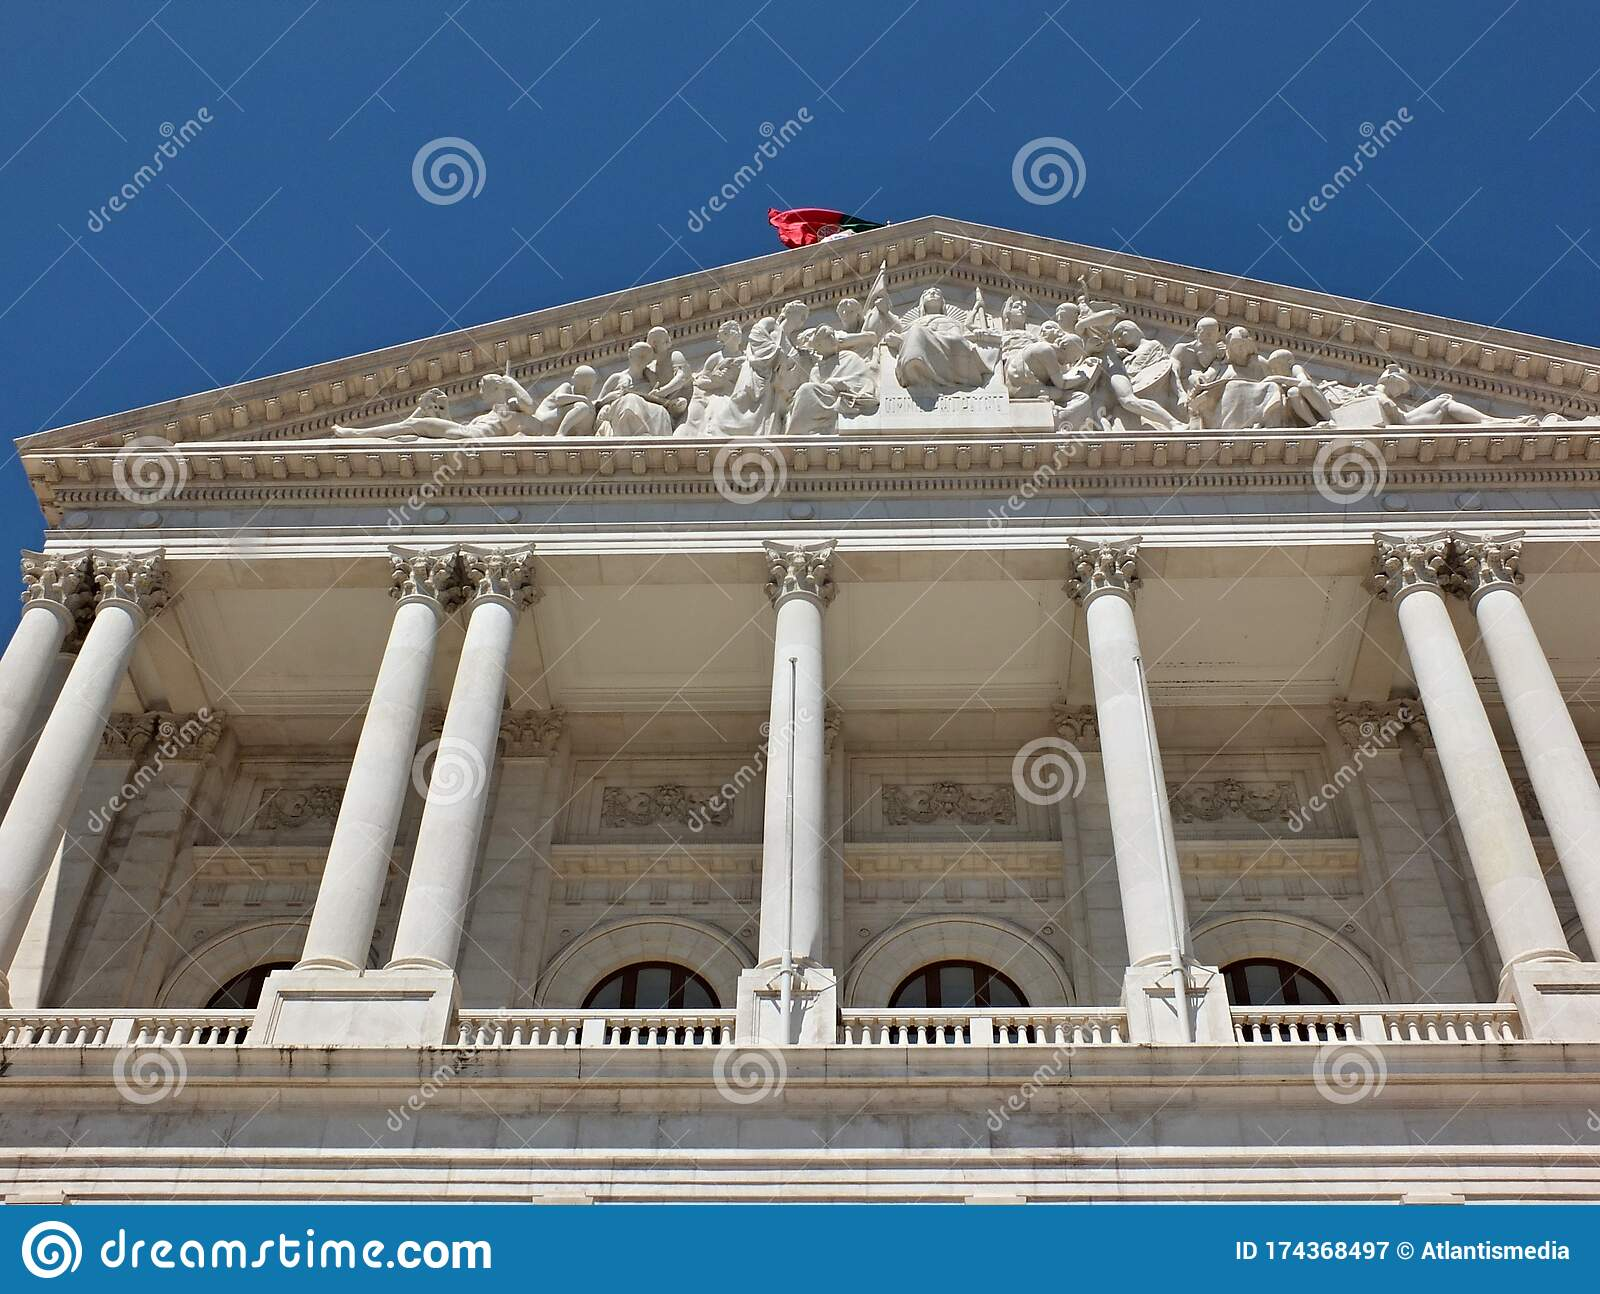 Historical Facade Of The Portugal Government In Lisbon Portugal Stock Image Image Of Parliament Classic 174368497